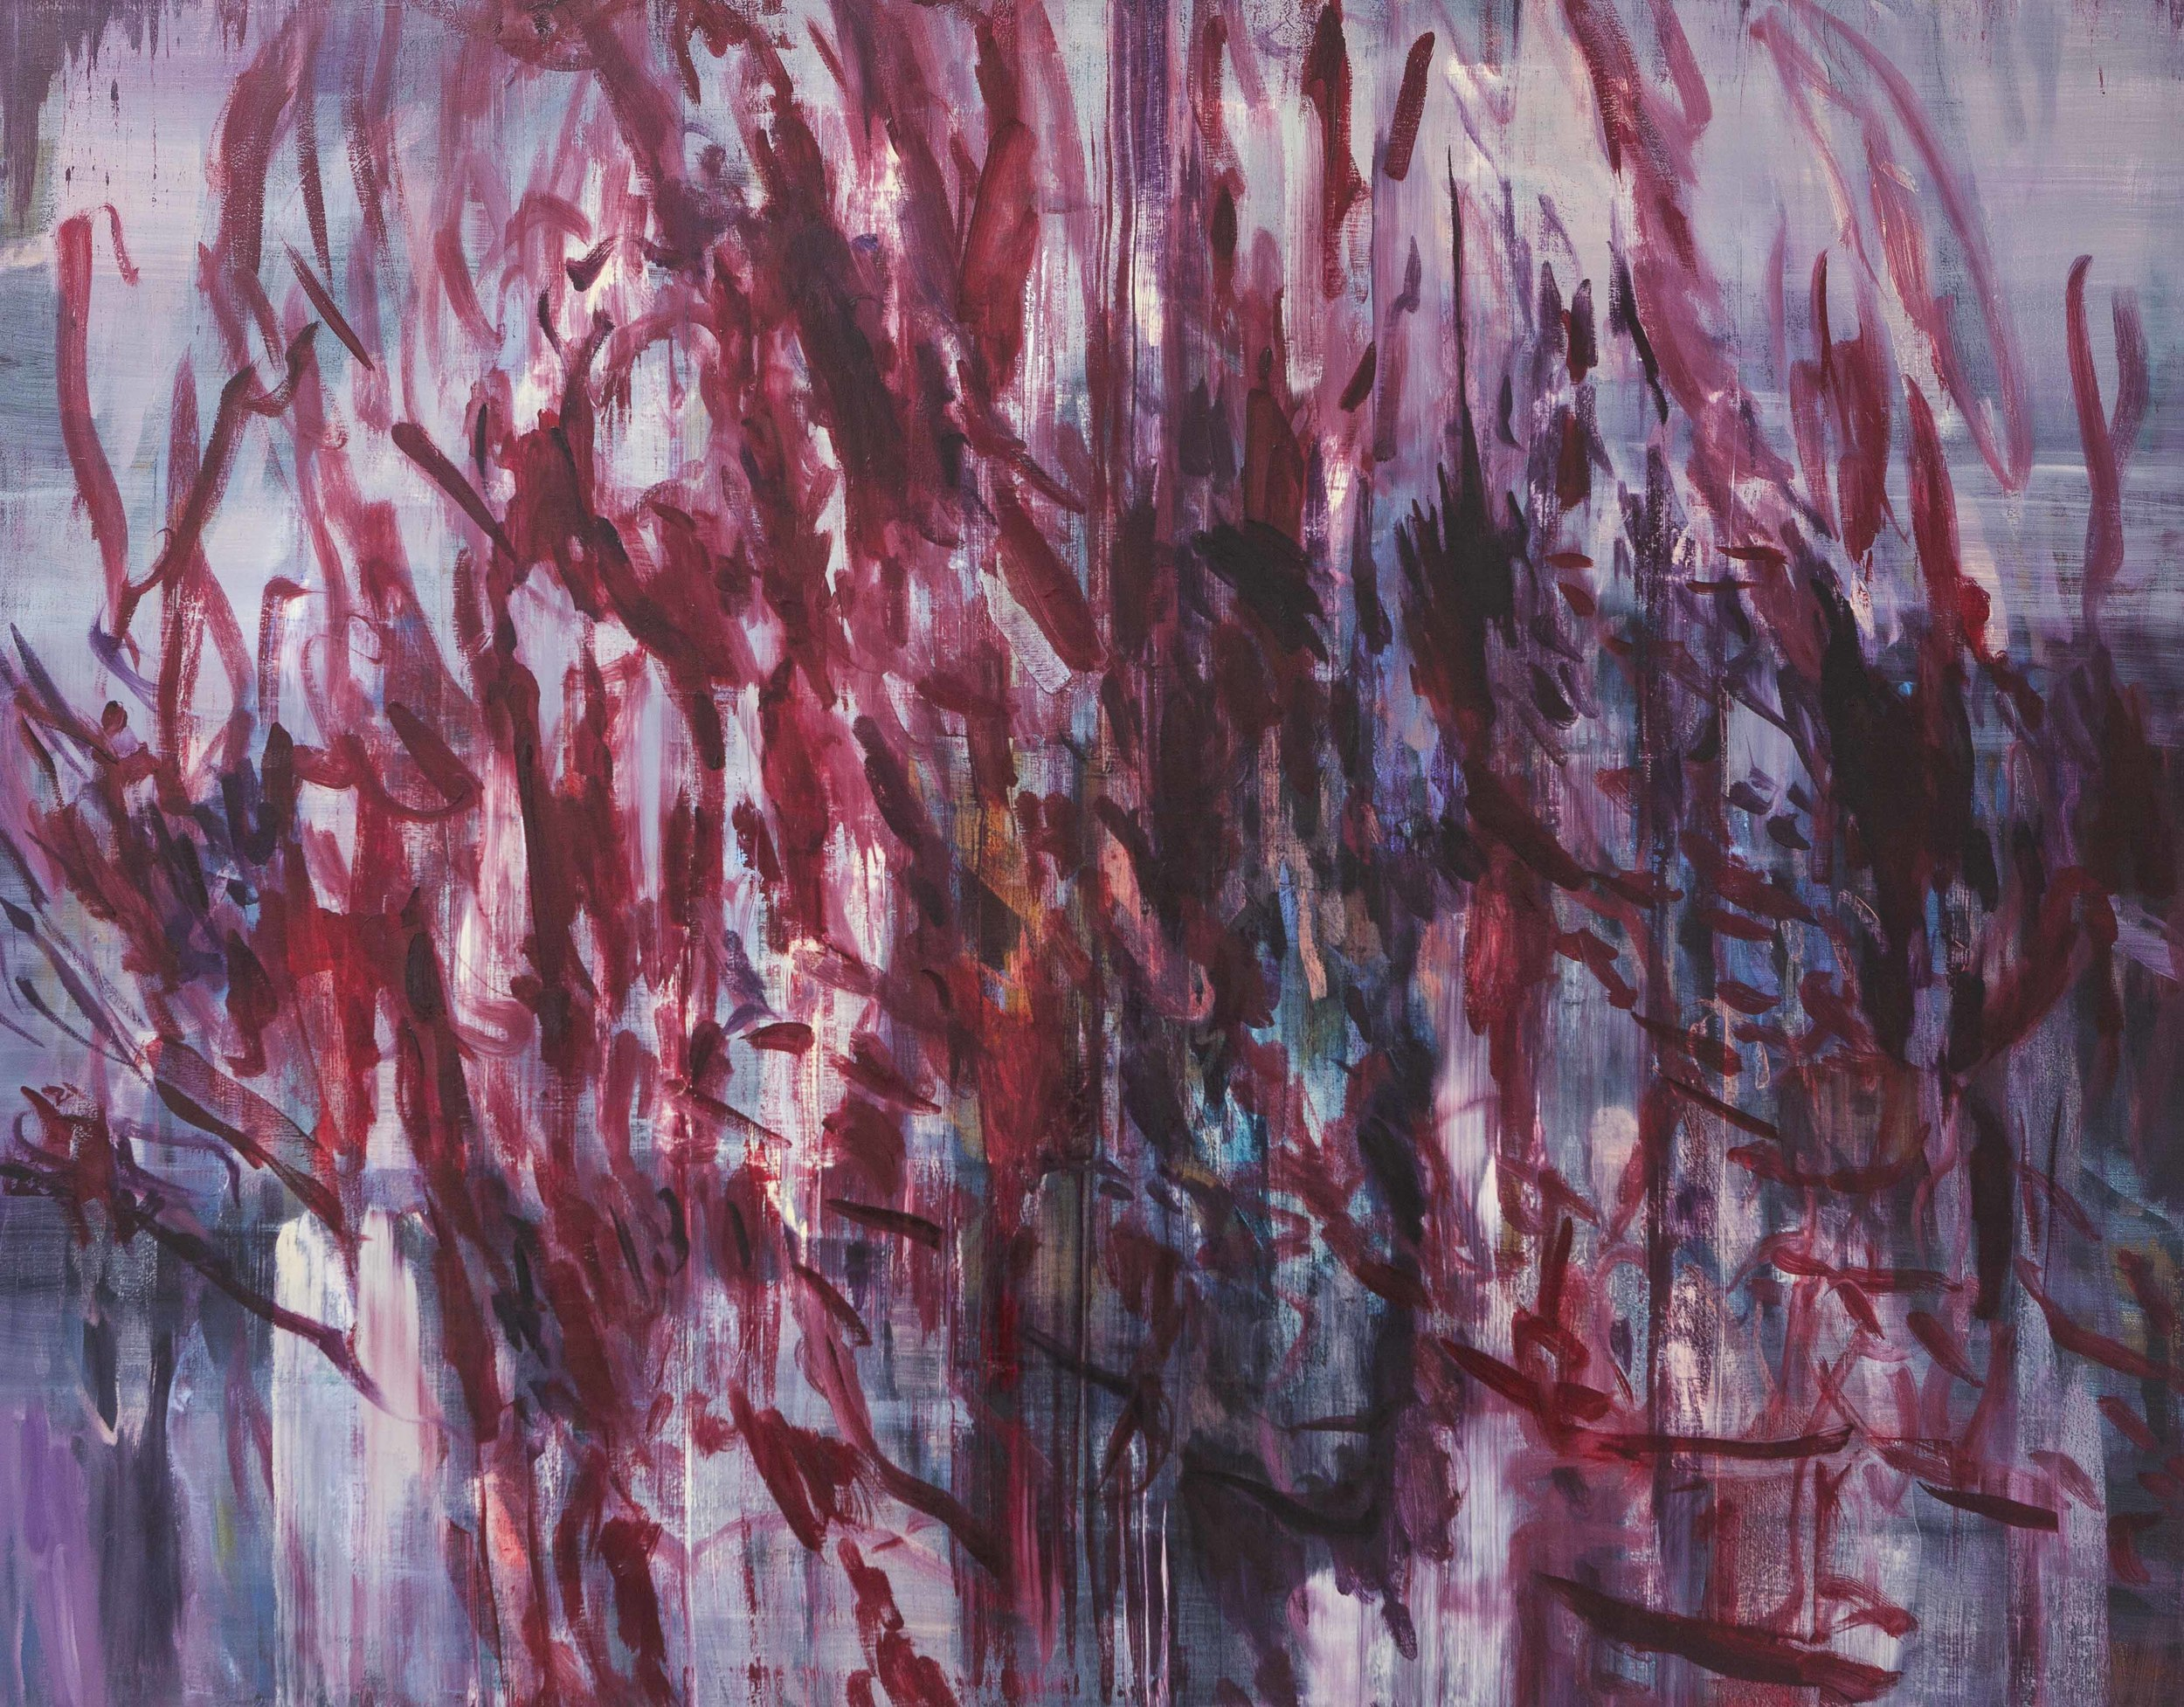 The Red Painting  2013  oil on canvas  146 x 186 cm